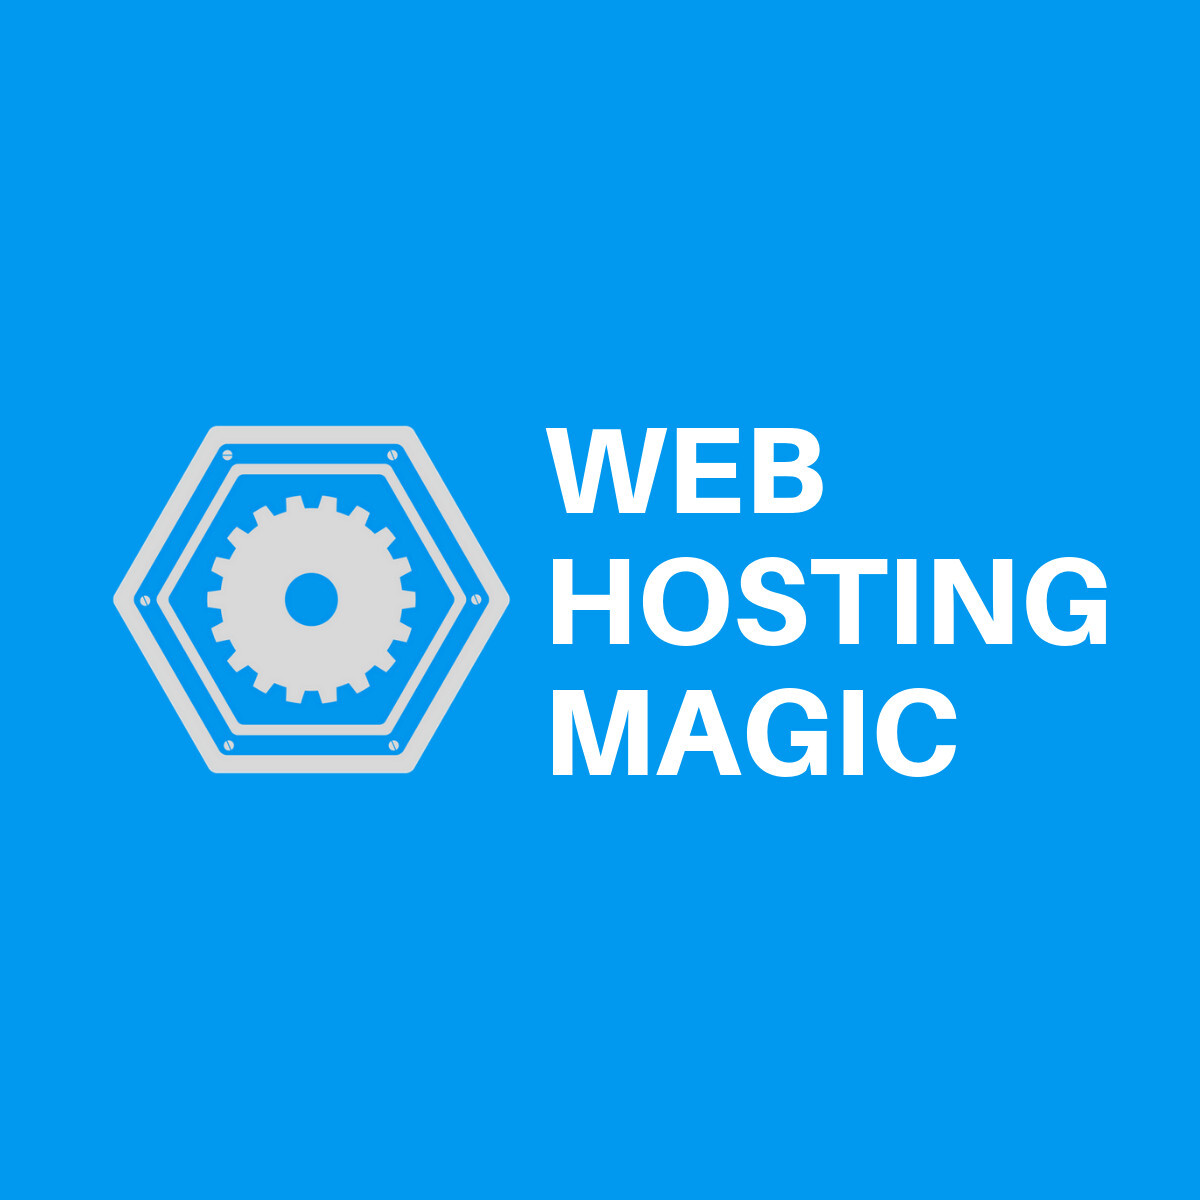 Web Hosting Magic